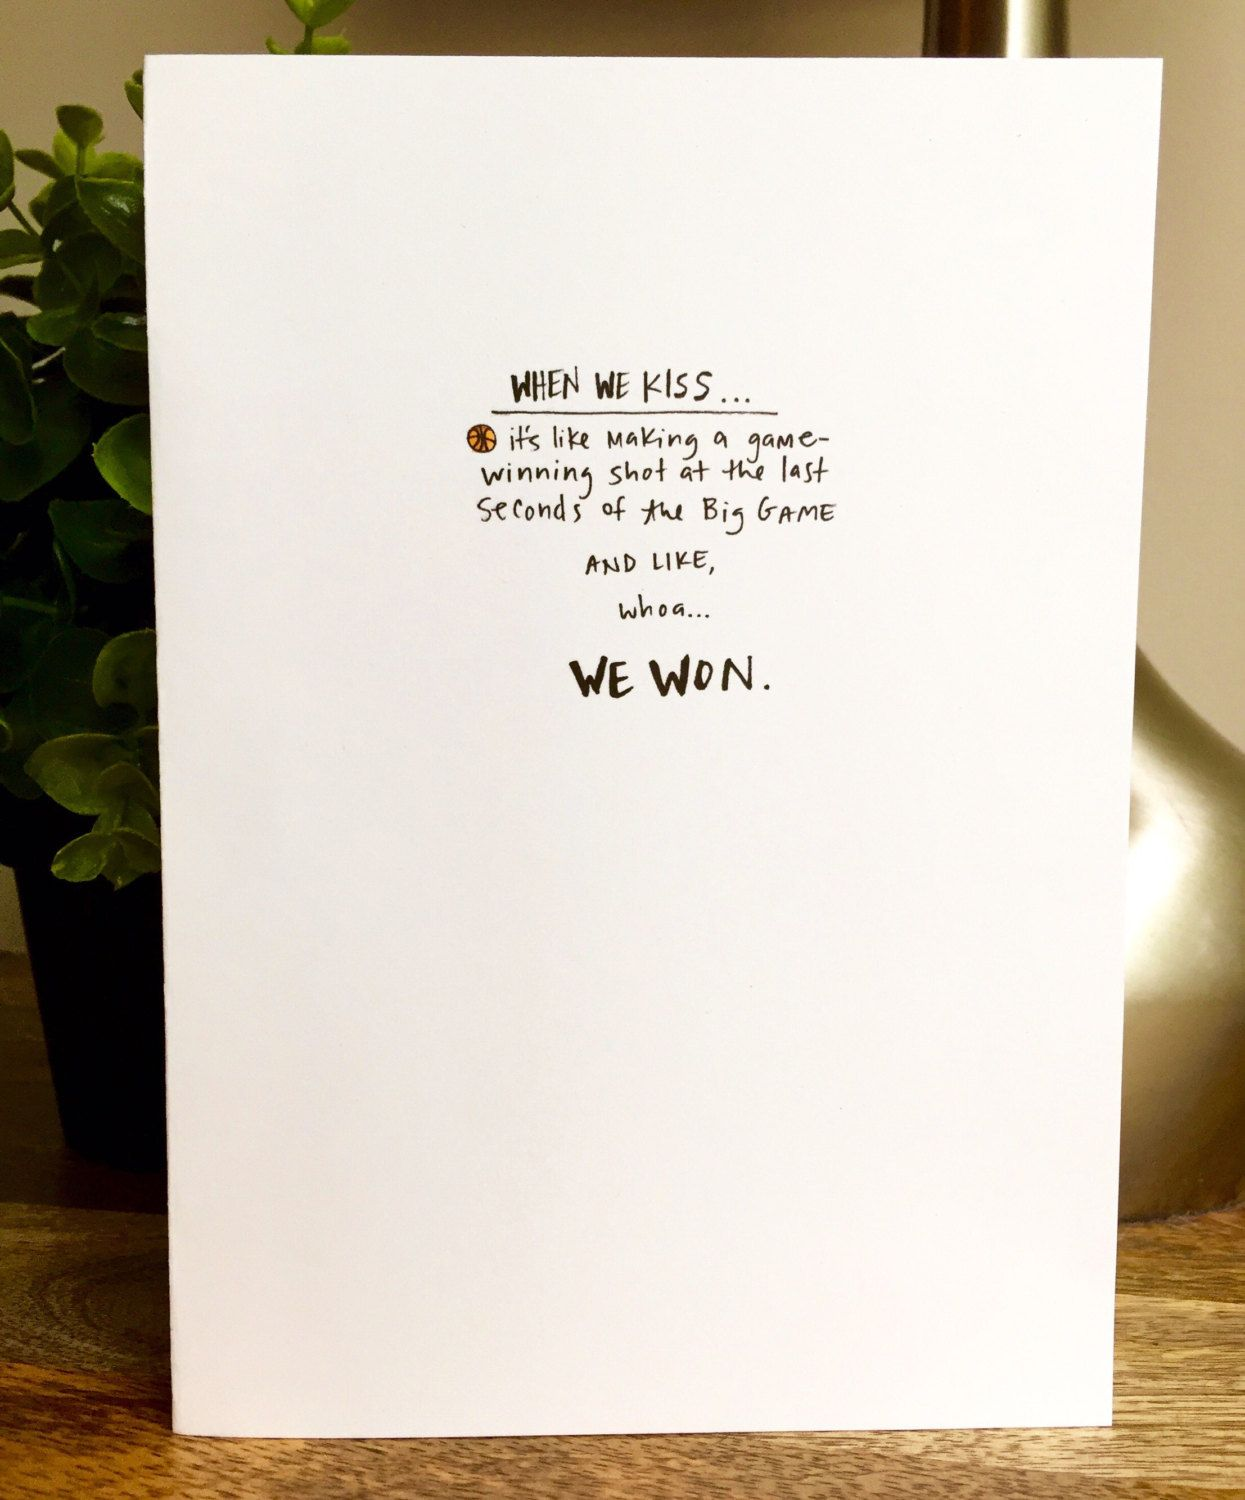 I Love You Card One Year Anniversary Card For Husband Paper Anniversary Card Anniversary Cards For Husband Anniversary Cards For Him Anniversary Cards